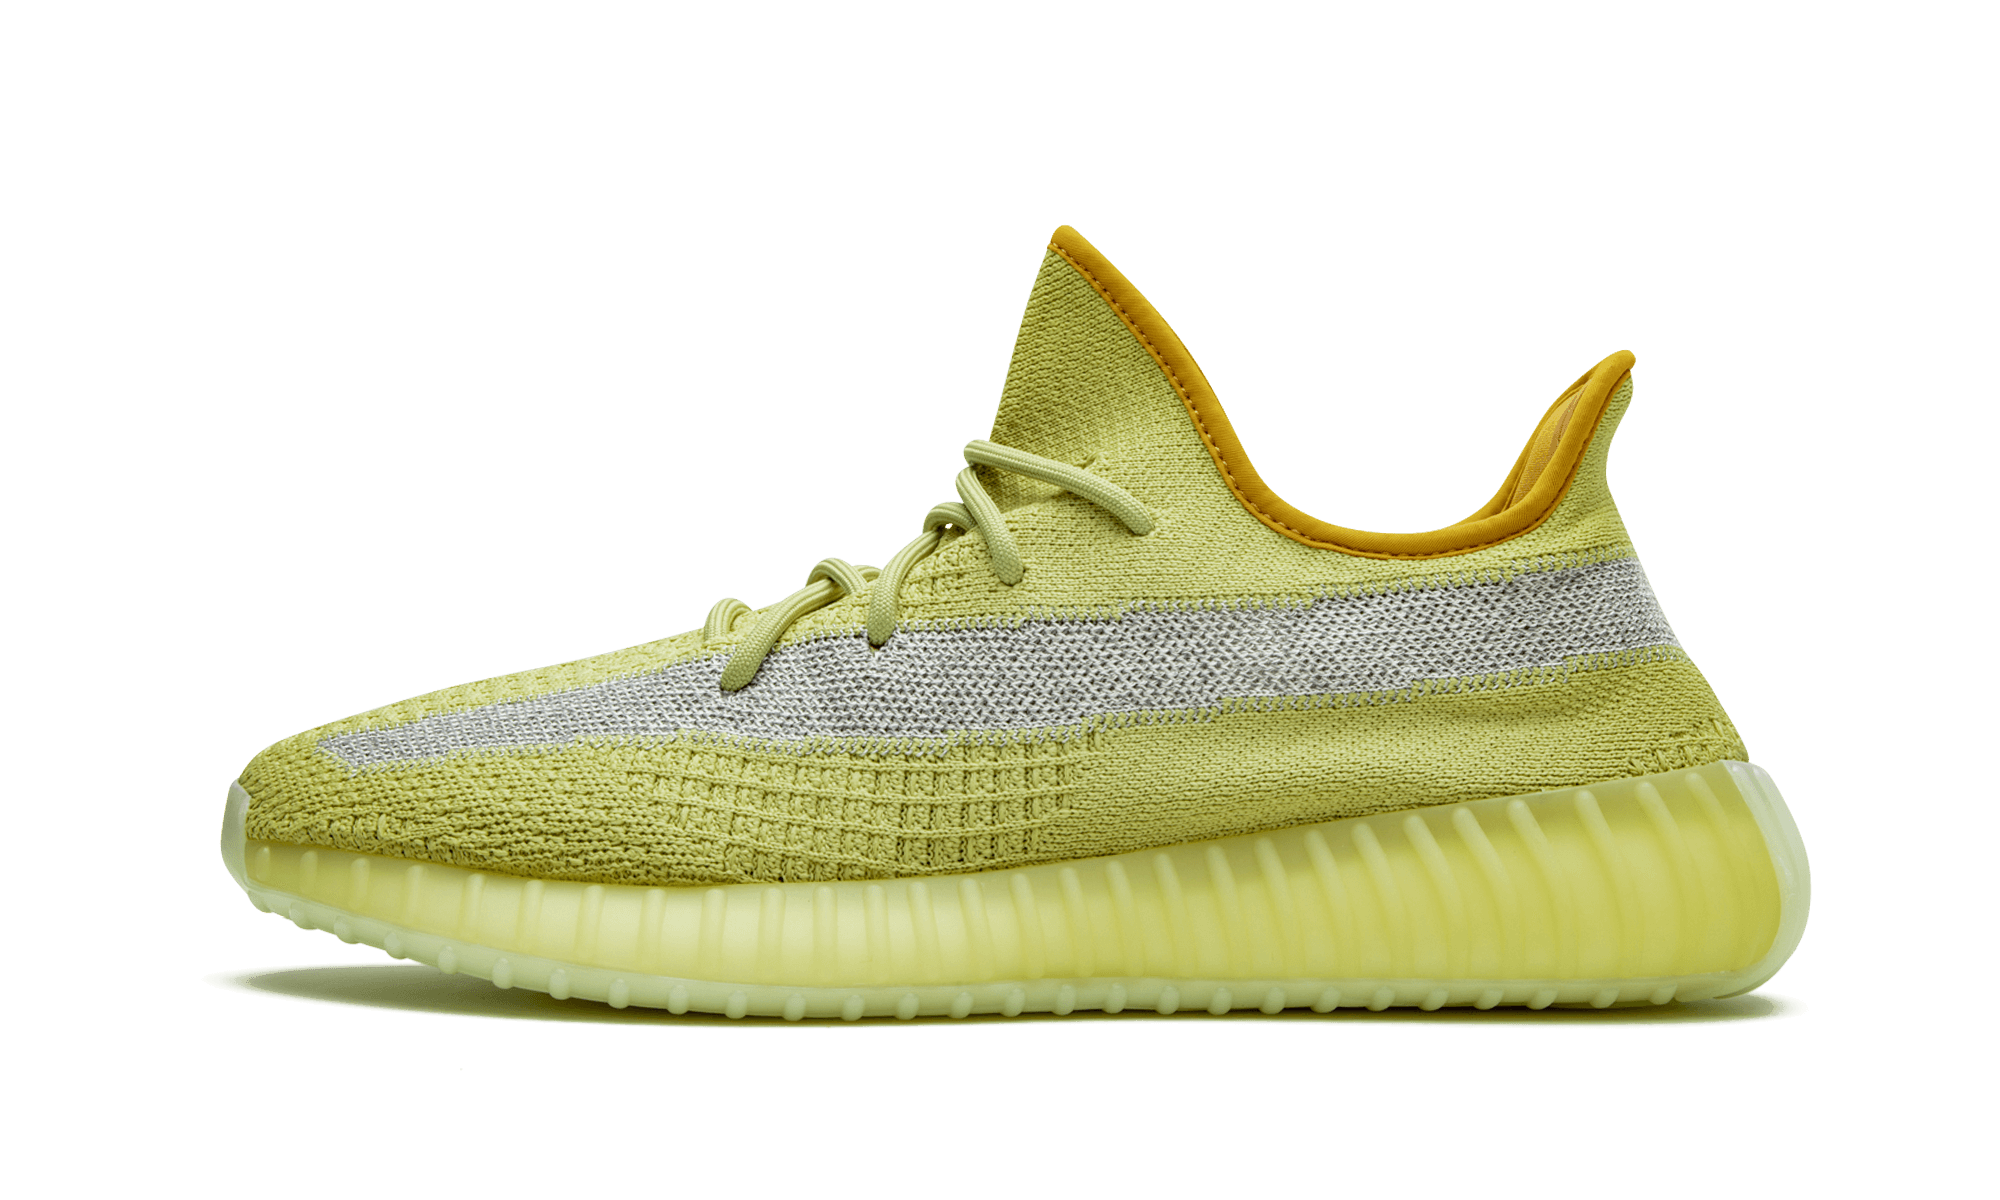 For sale the best Adidas Yeezy Boost 350 V2 Marsh